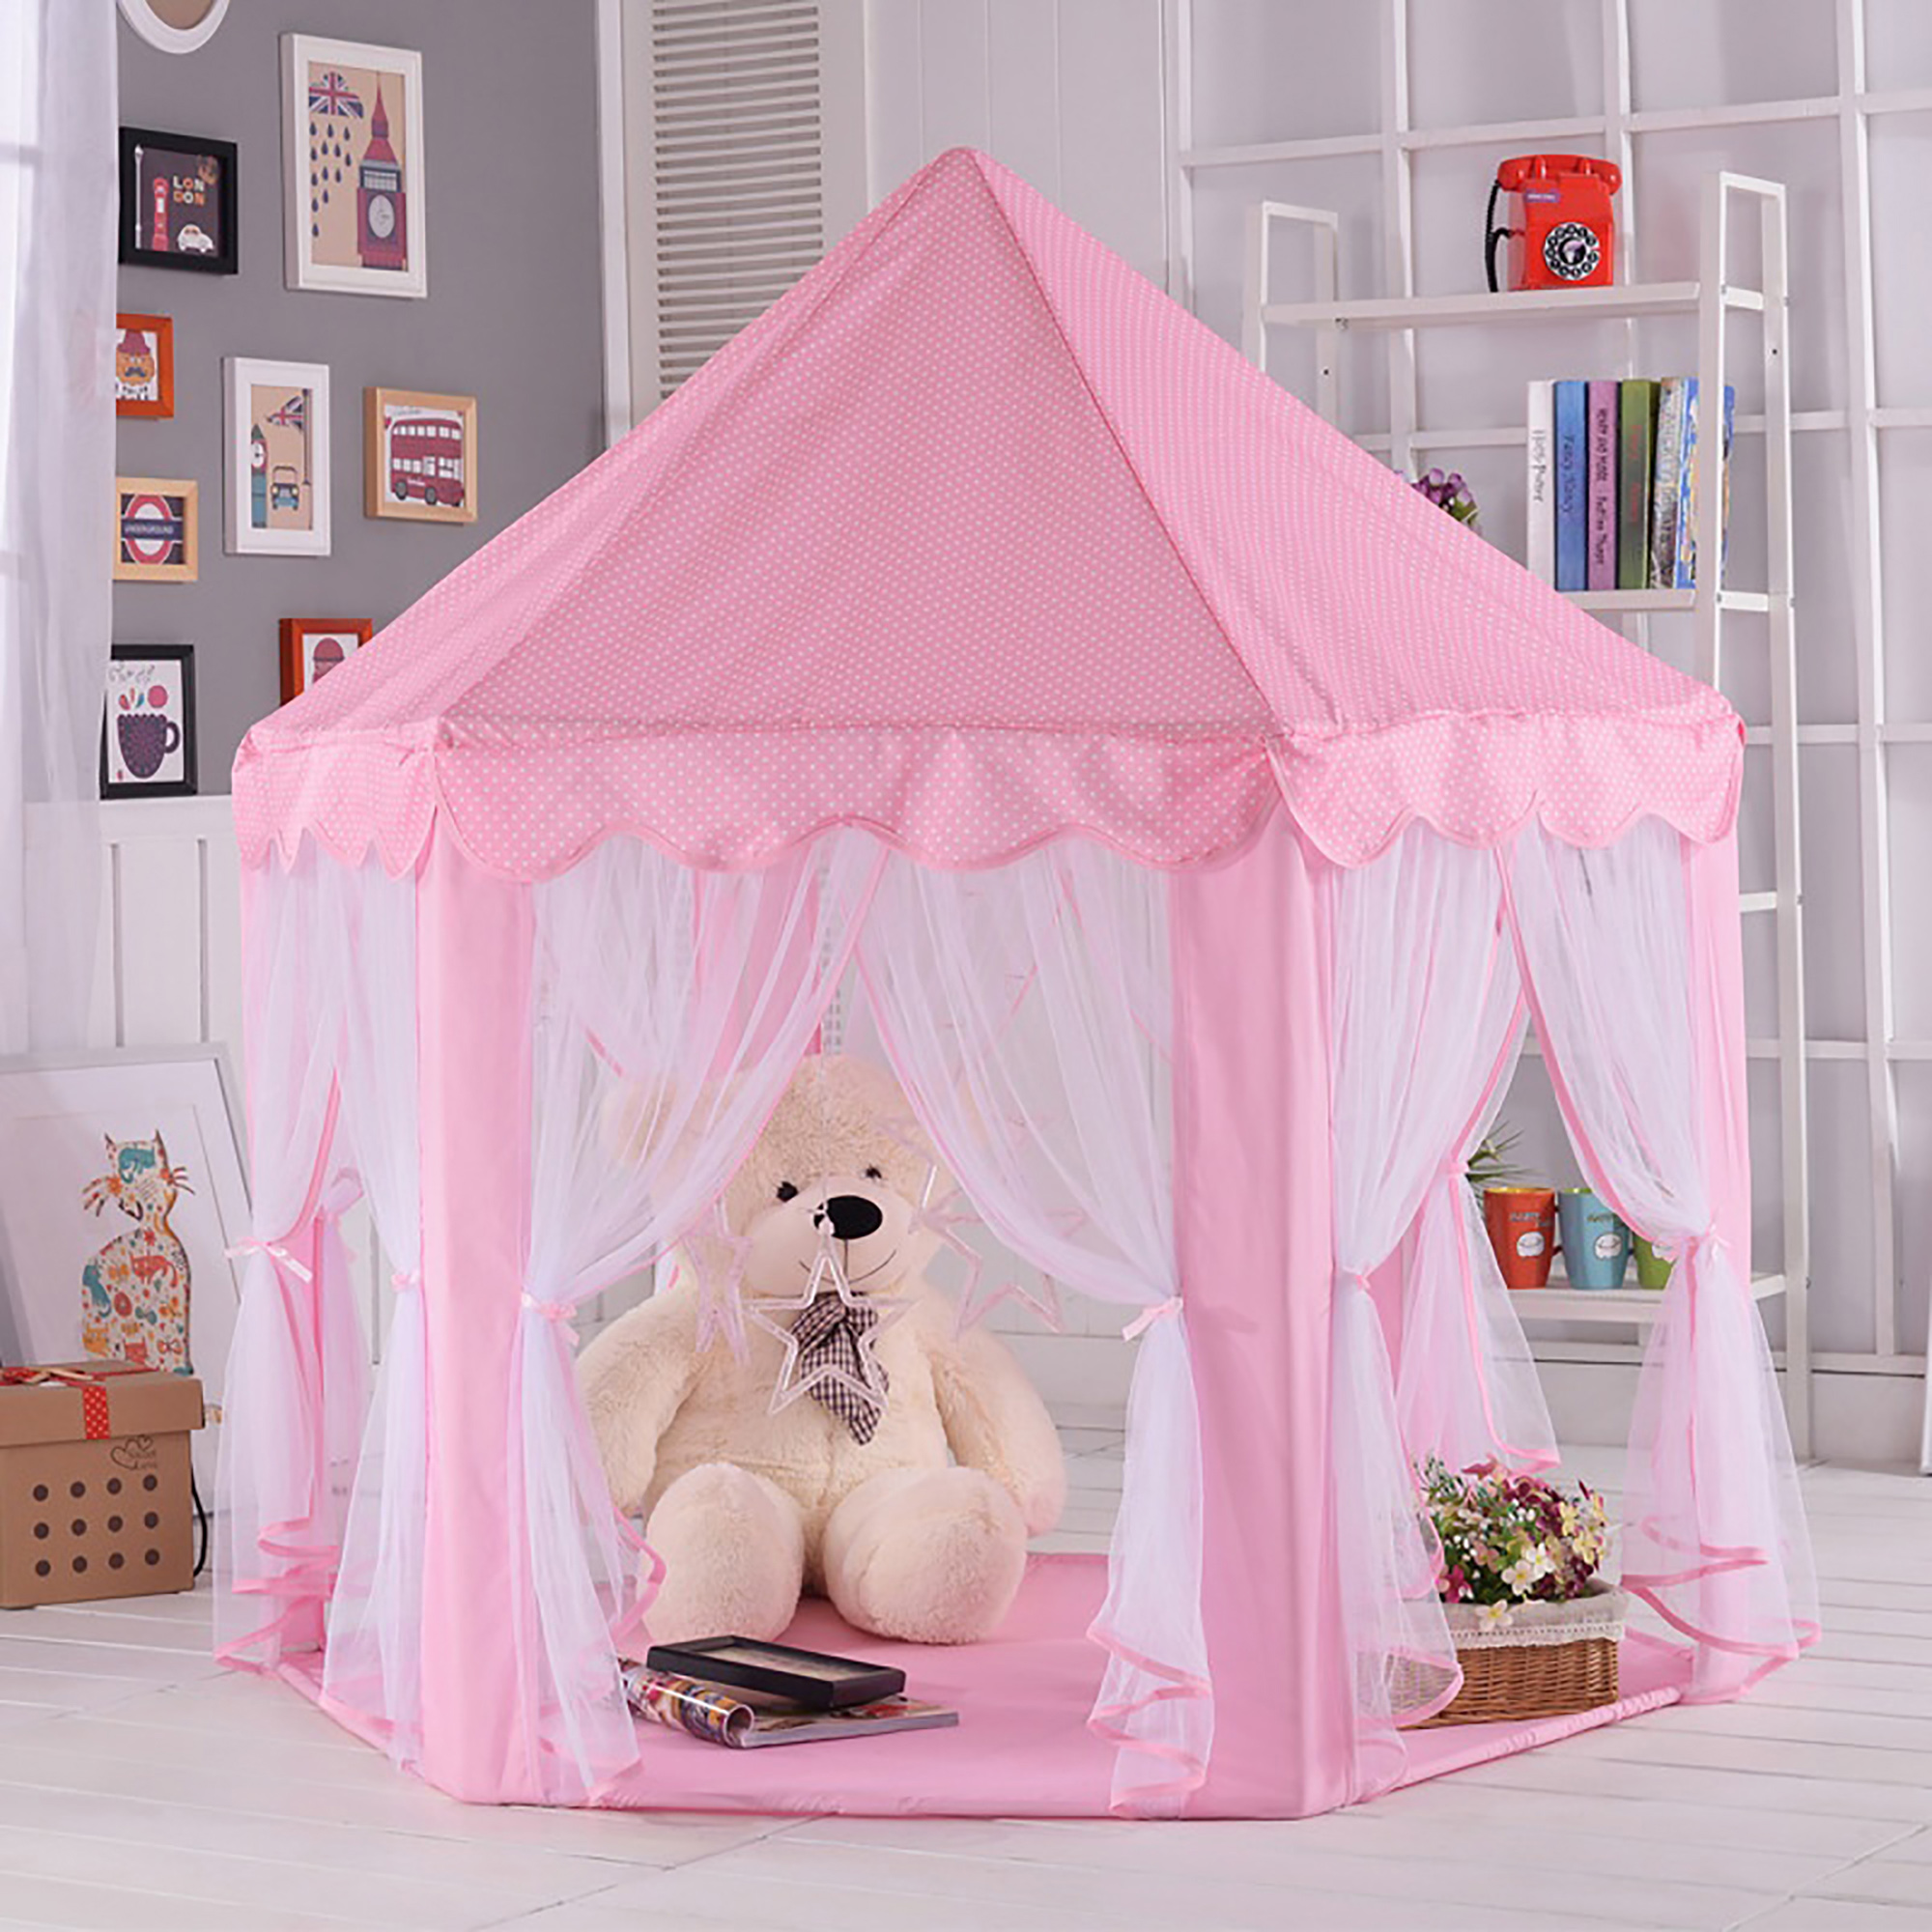 Tents for Girls, Outdoor Indoor Portable Folding Princess Castle Tent Kids Children Funny Play Fairy House... by